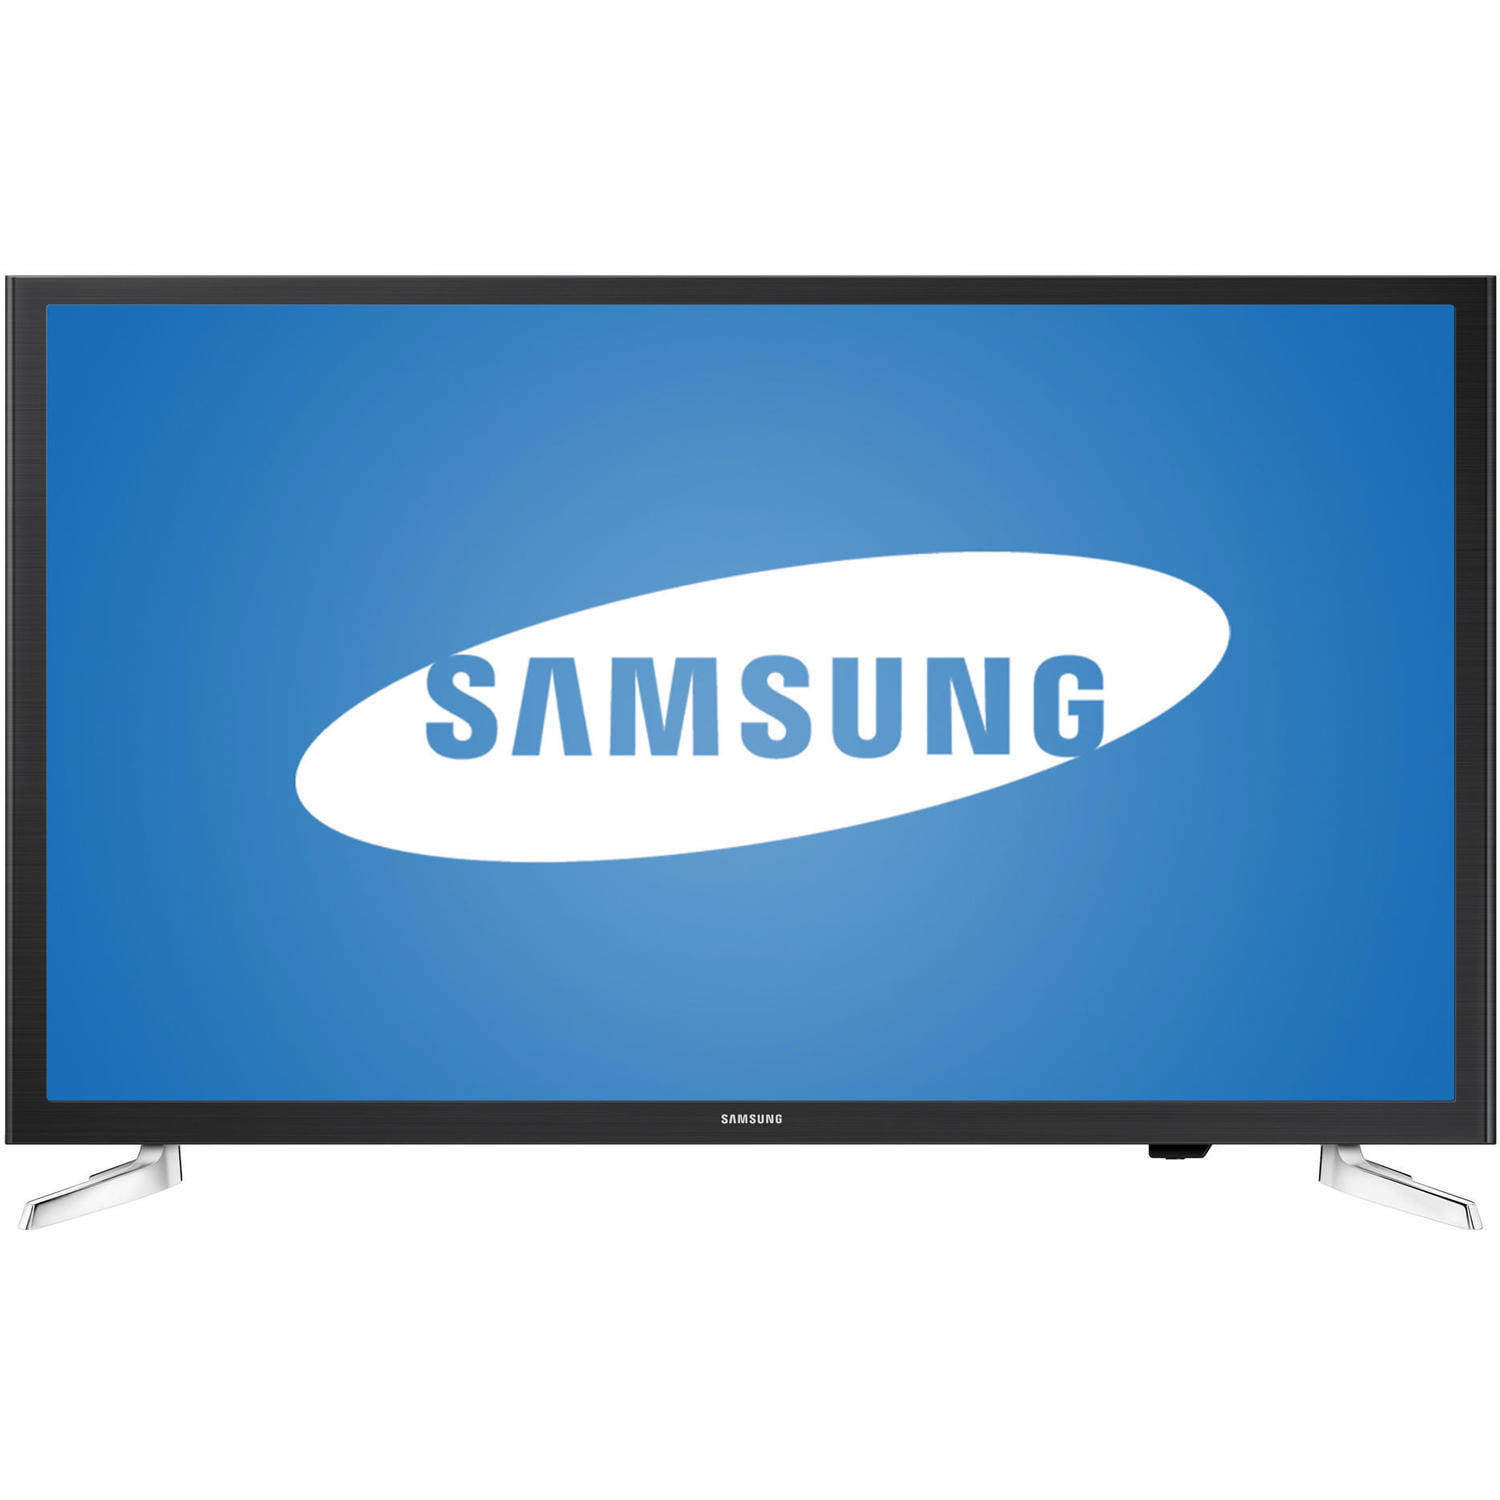 Samsung DVD Player (DVD-E360) - Walmart.com